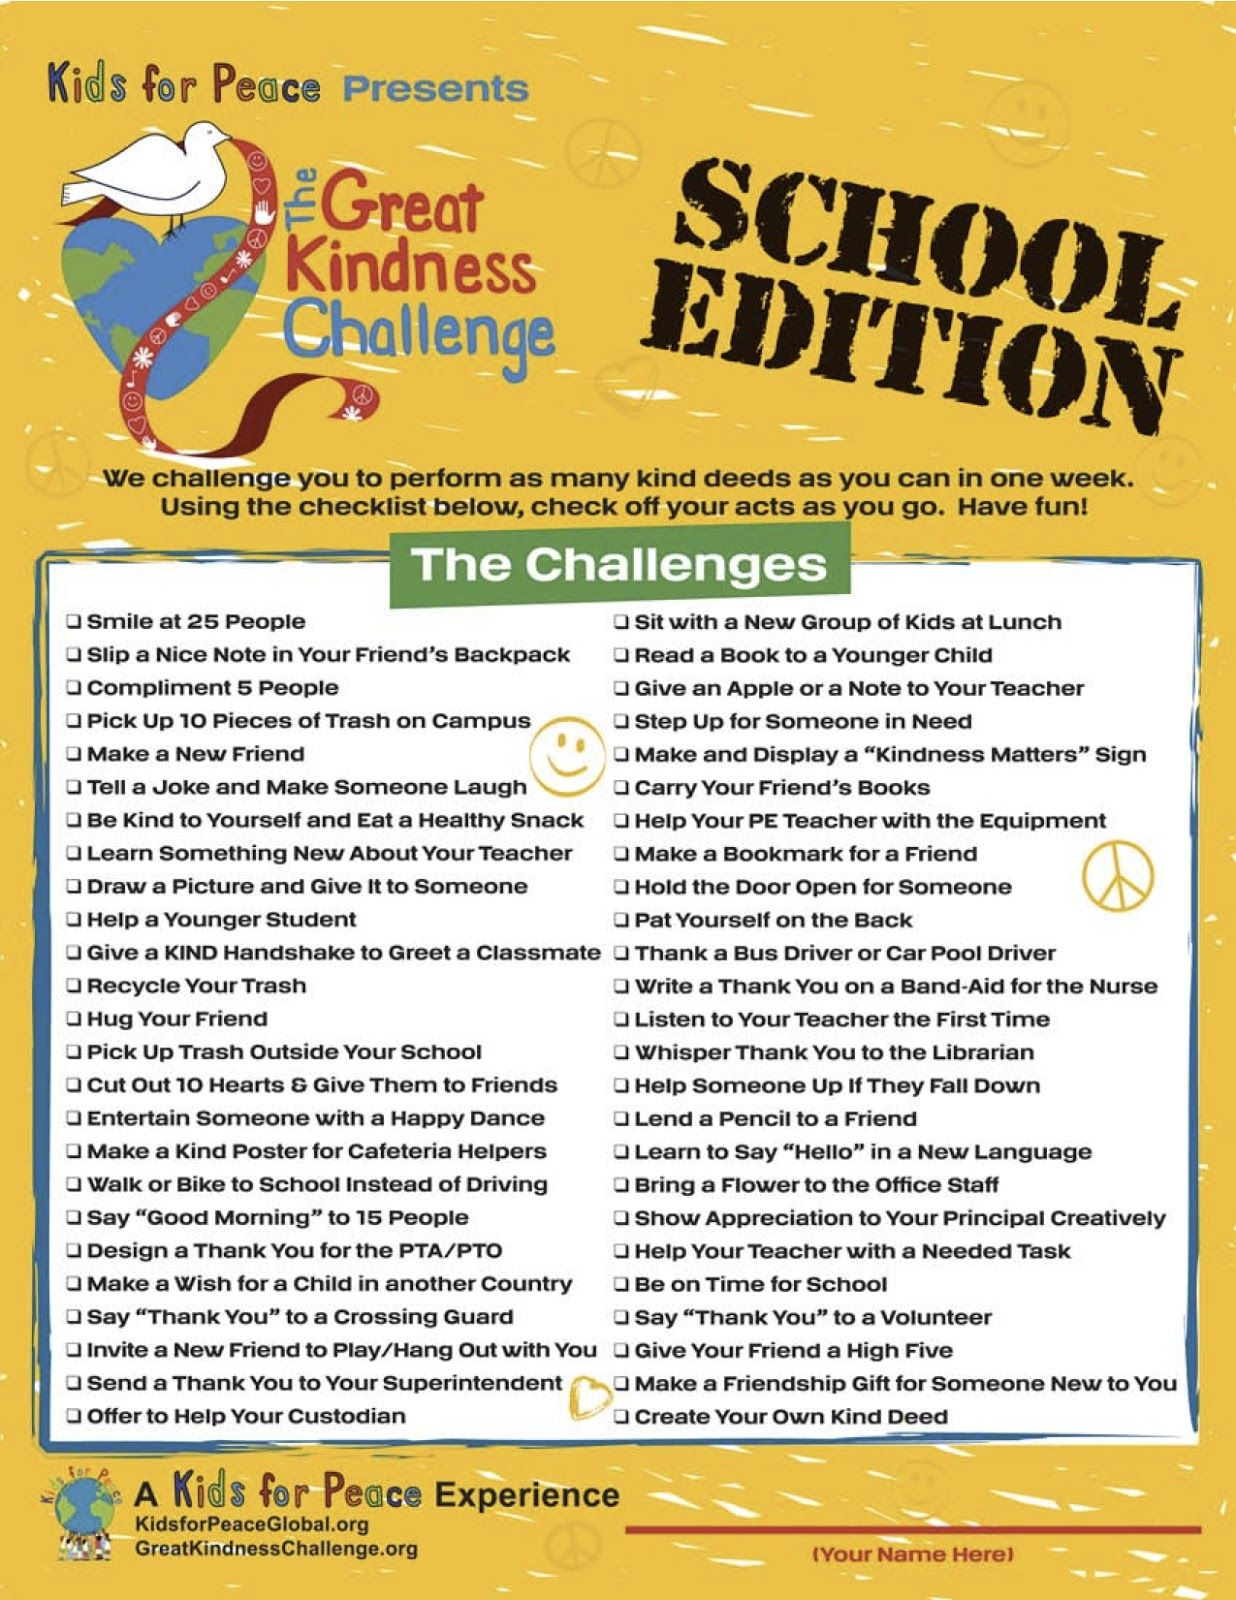 Kindness Really Matters Mitchell School Participated In The Nation Wide Program The Great